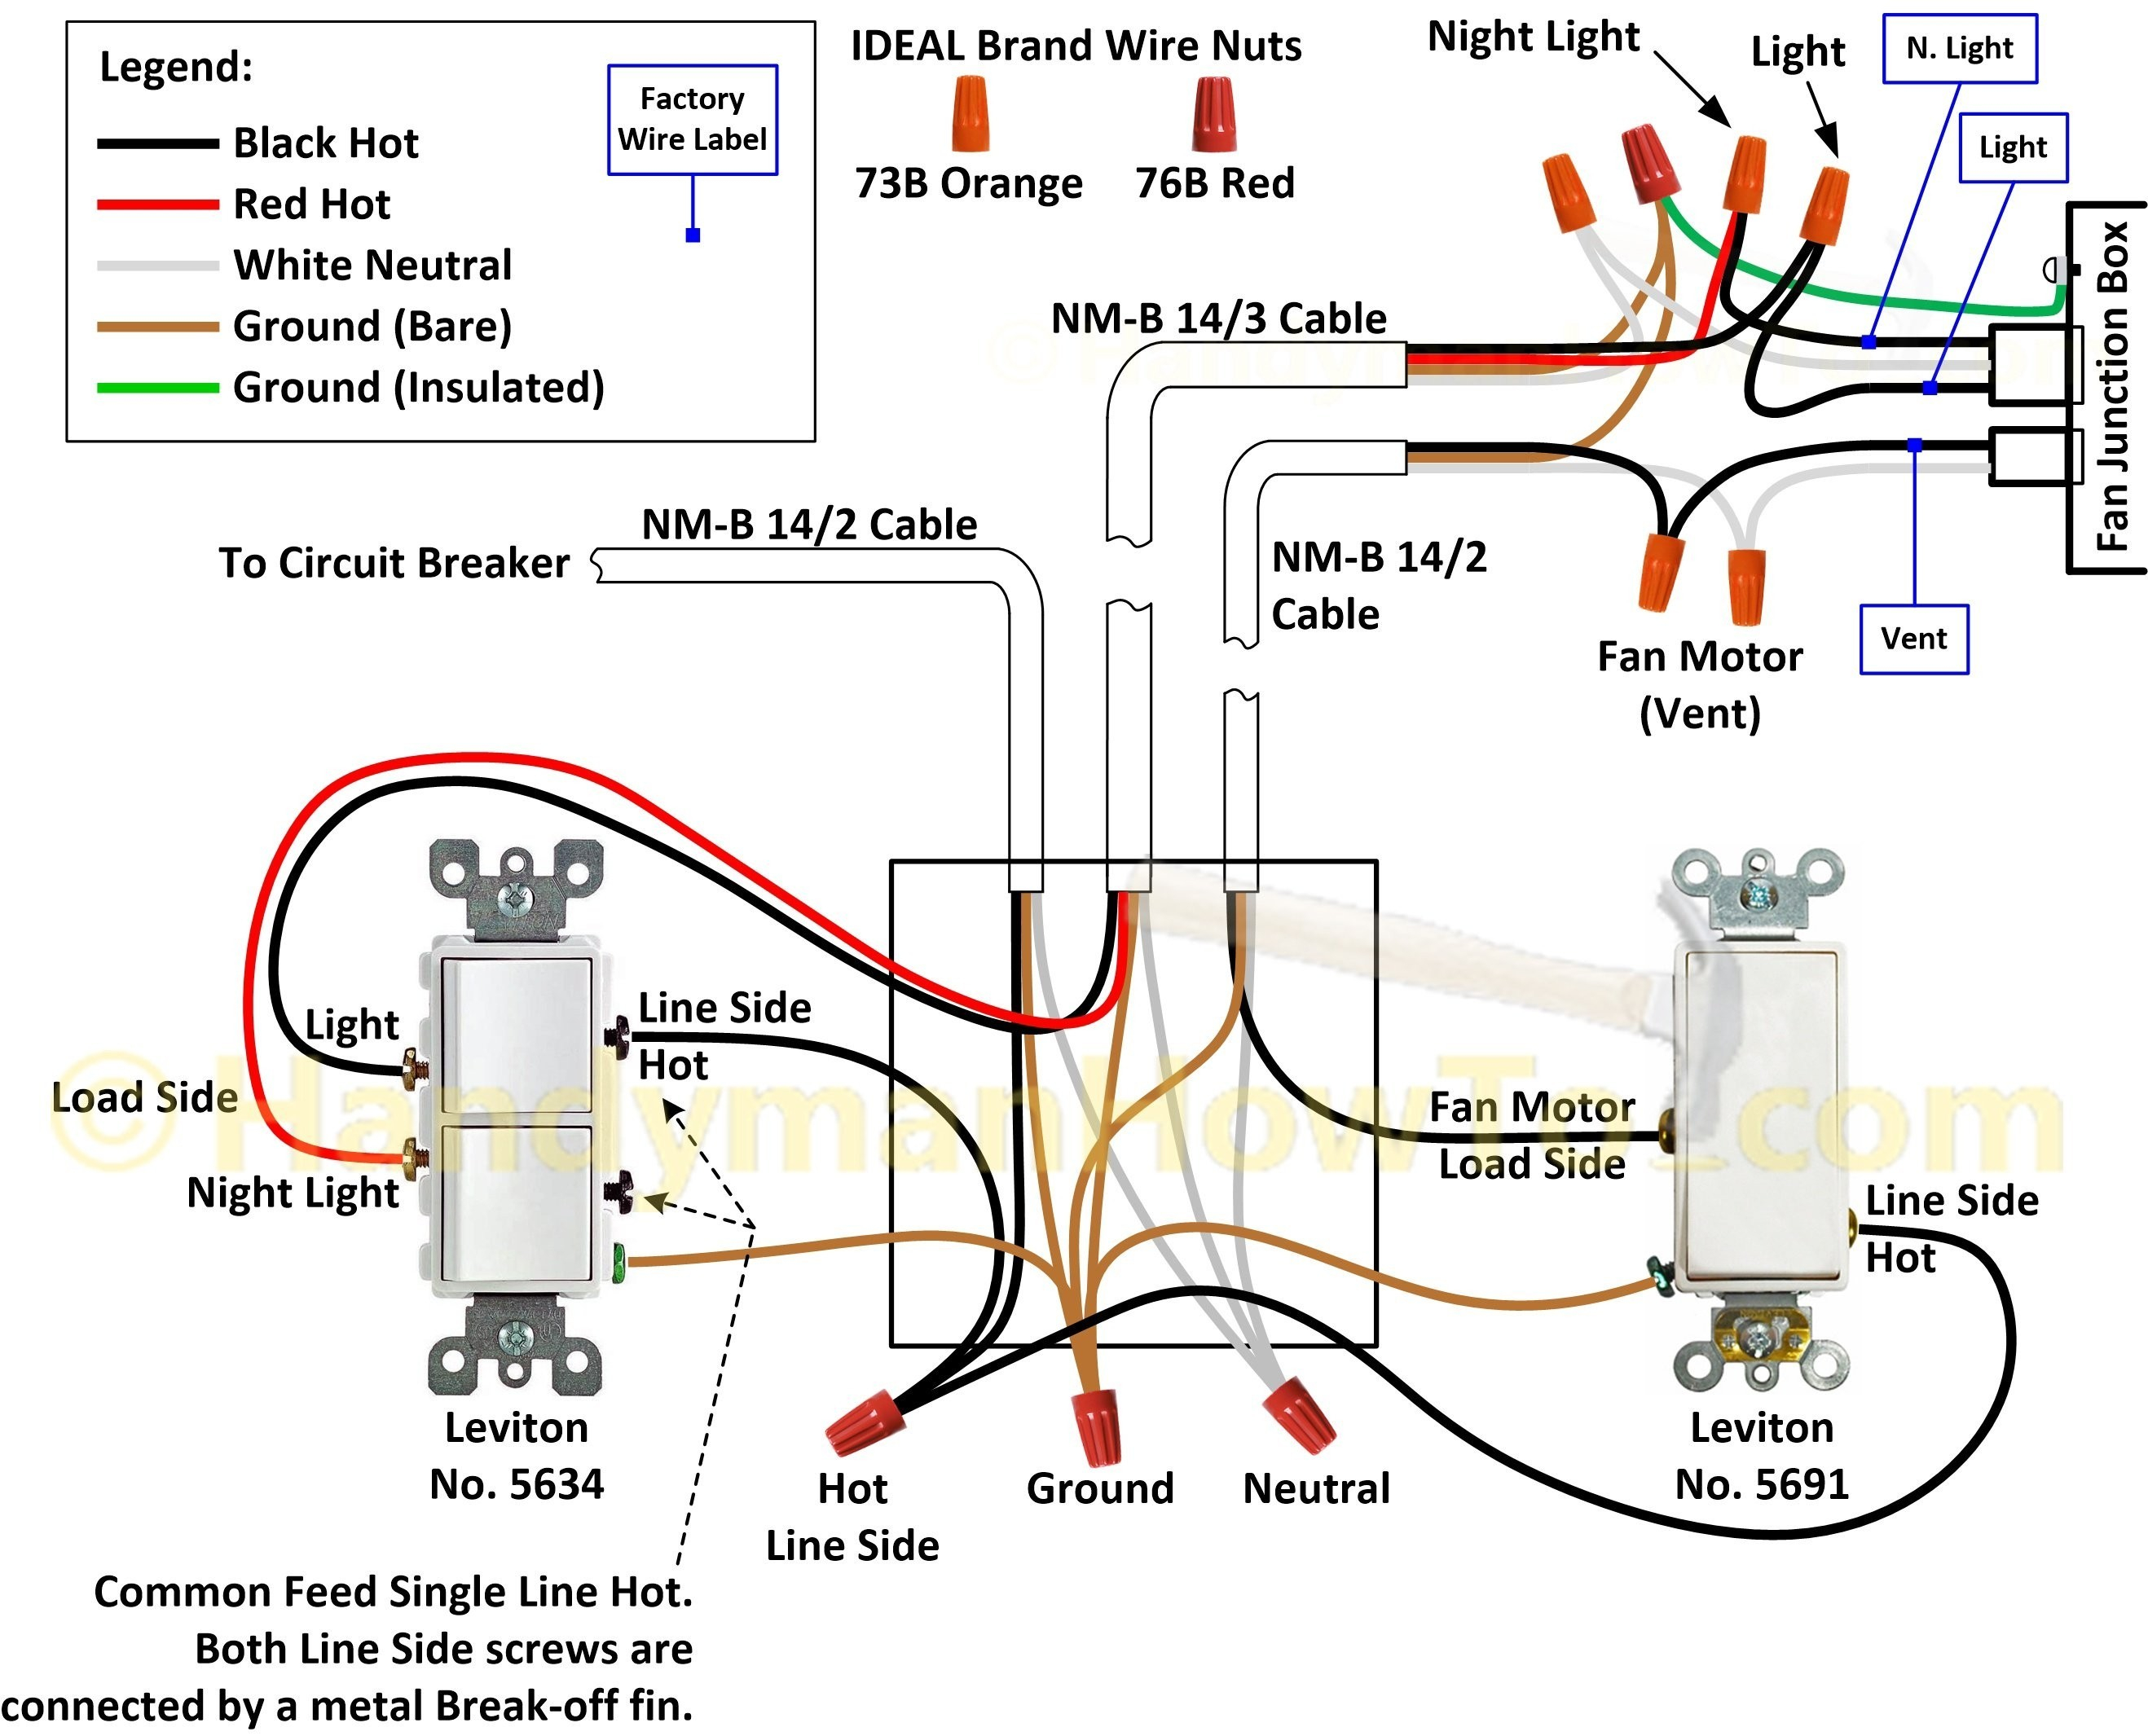 Ac Wiring Diagram Cougar And Schematics 1997 Mercury 1967 1968 Mustang Selectair Air Conditioning Source Duct Fan Sd Control Car Fuse Box U2022 Rh Champs Co